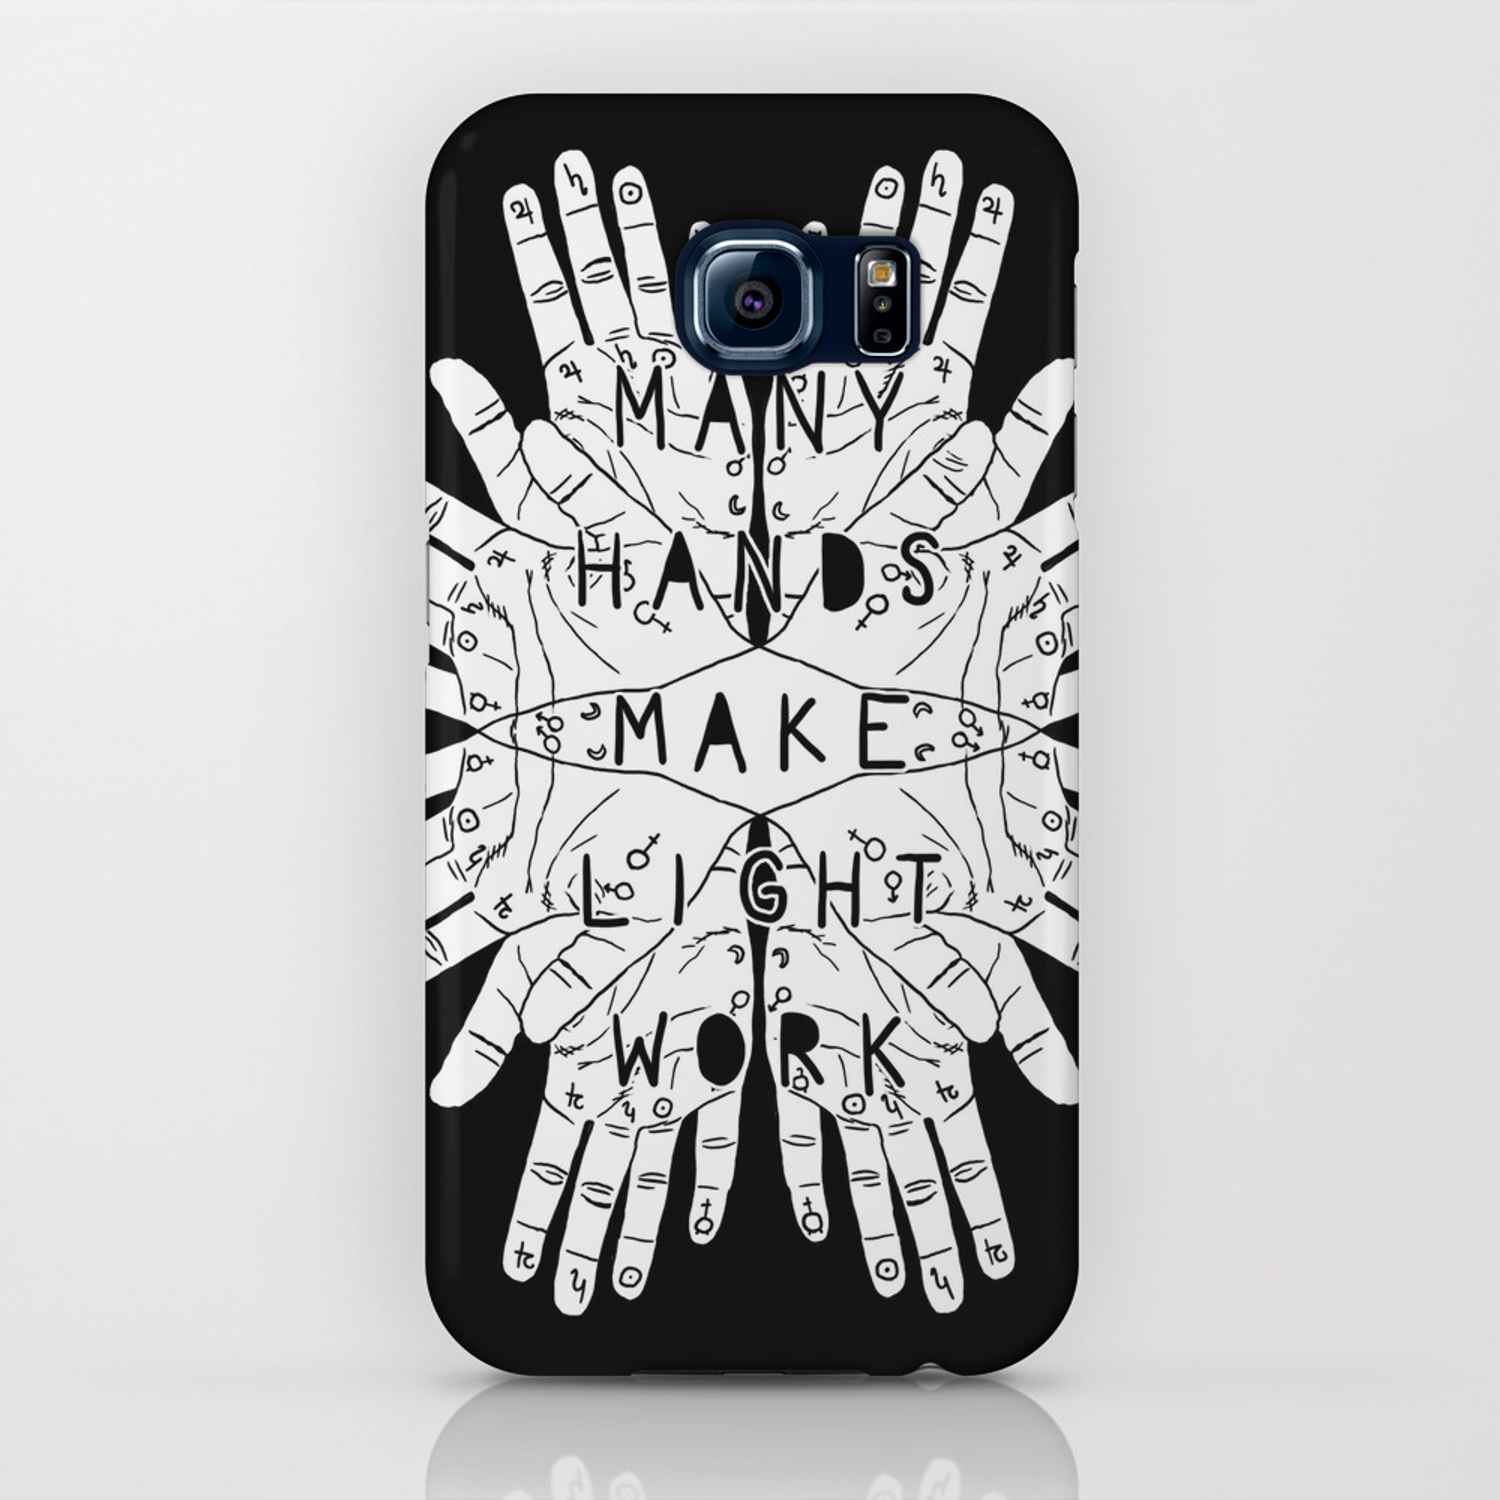 competitive price 201f9 29f4d Many hands make light work (inverted) iPhone Case